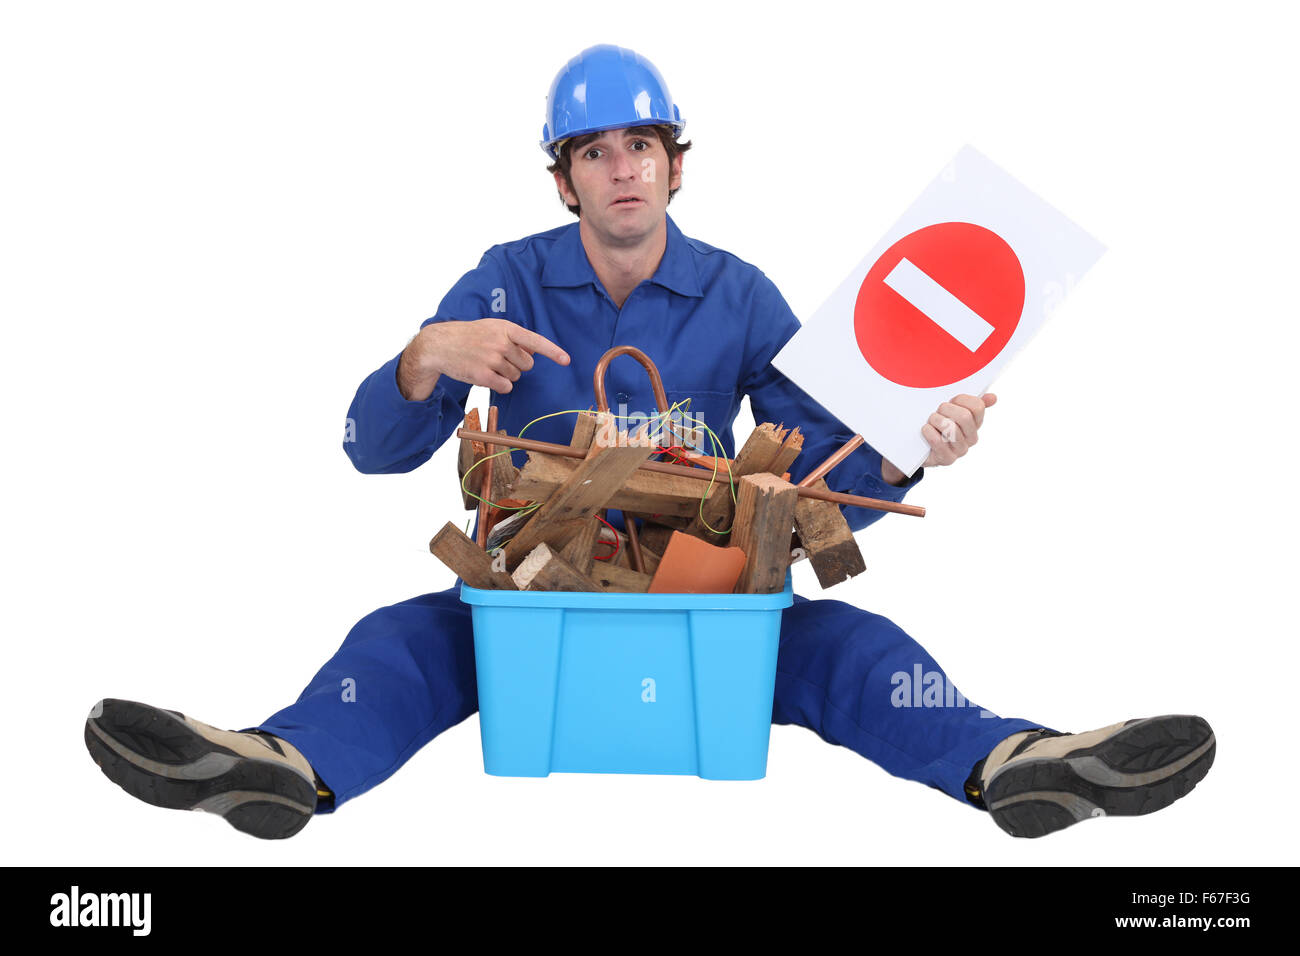 Worker with a box of old materials and a no entry sign - Stock Image